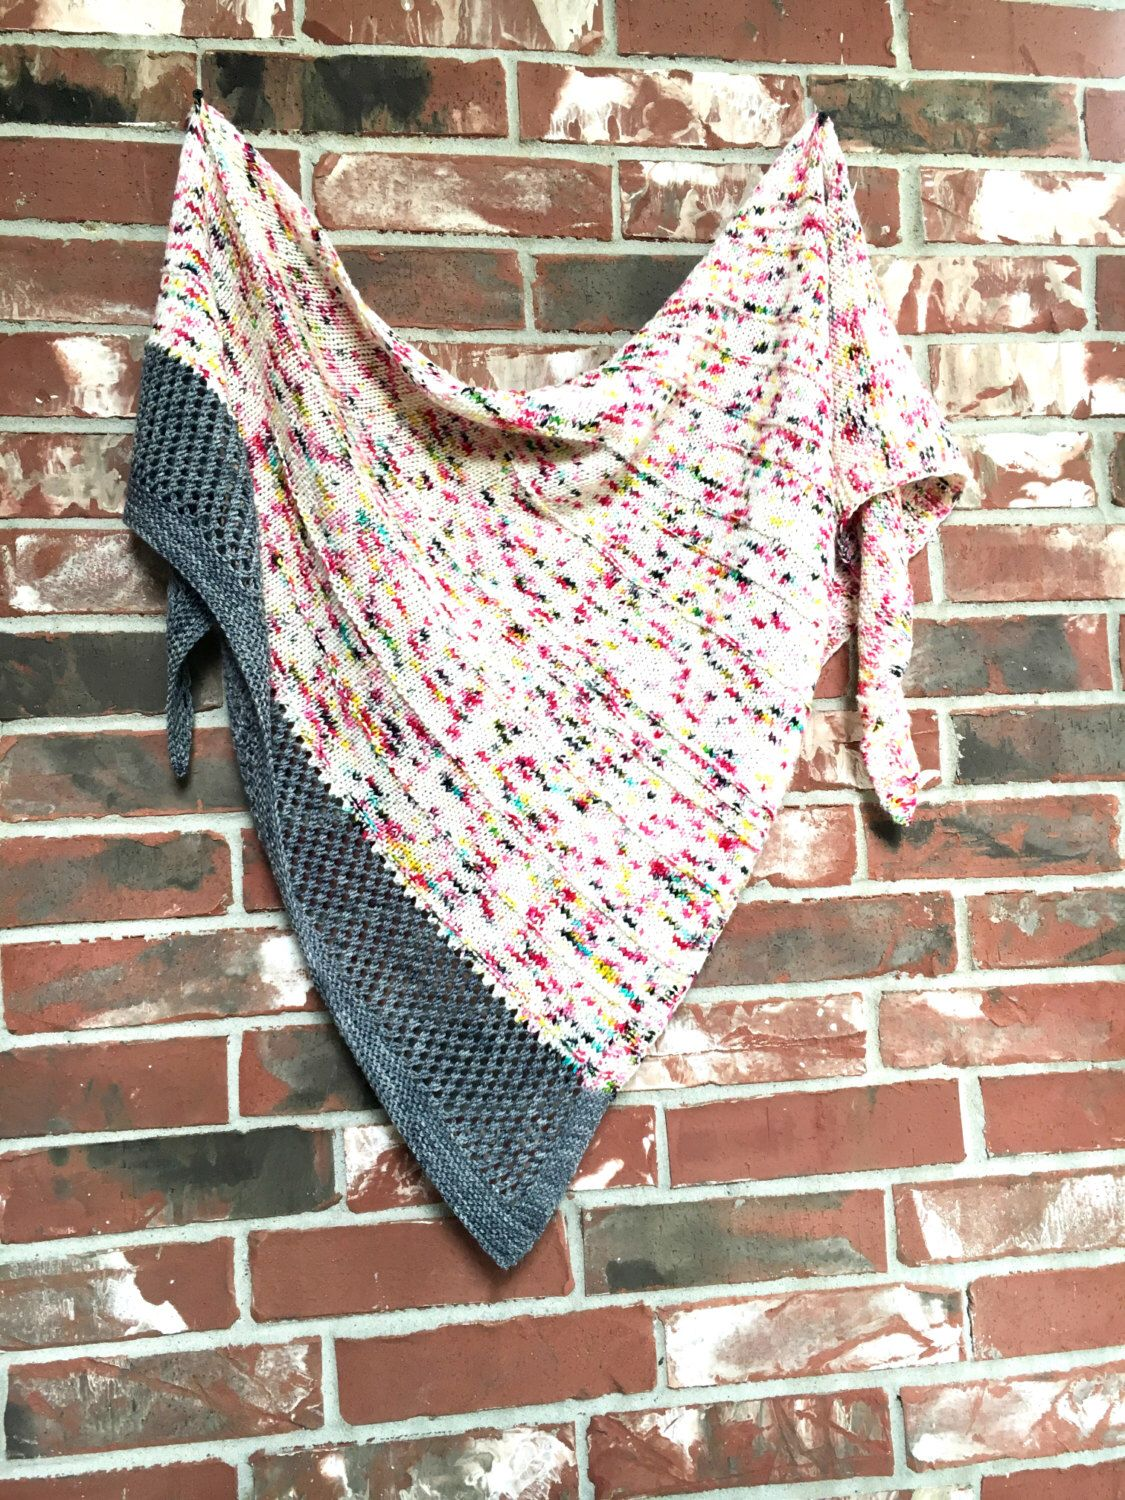 Got speckled yarn get this pattern graffiti shawl knitting get this pattern graffiti shawl knitting pattern knit triangle scarf bankloansurffo Image collections